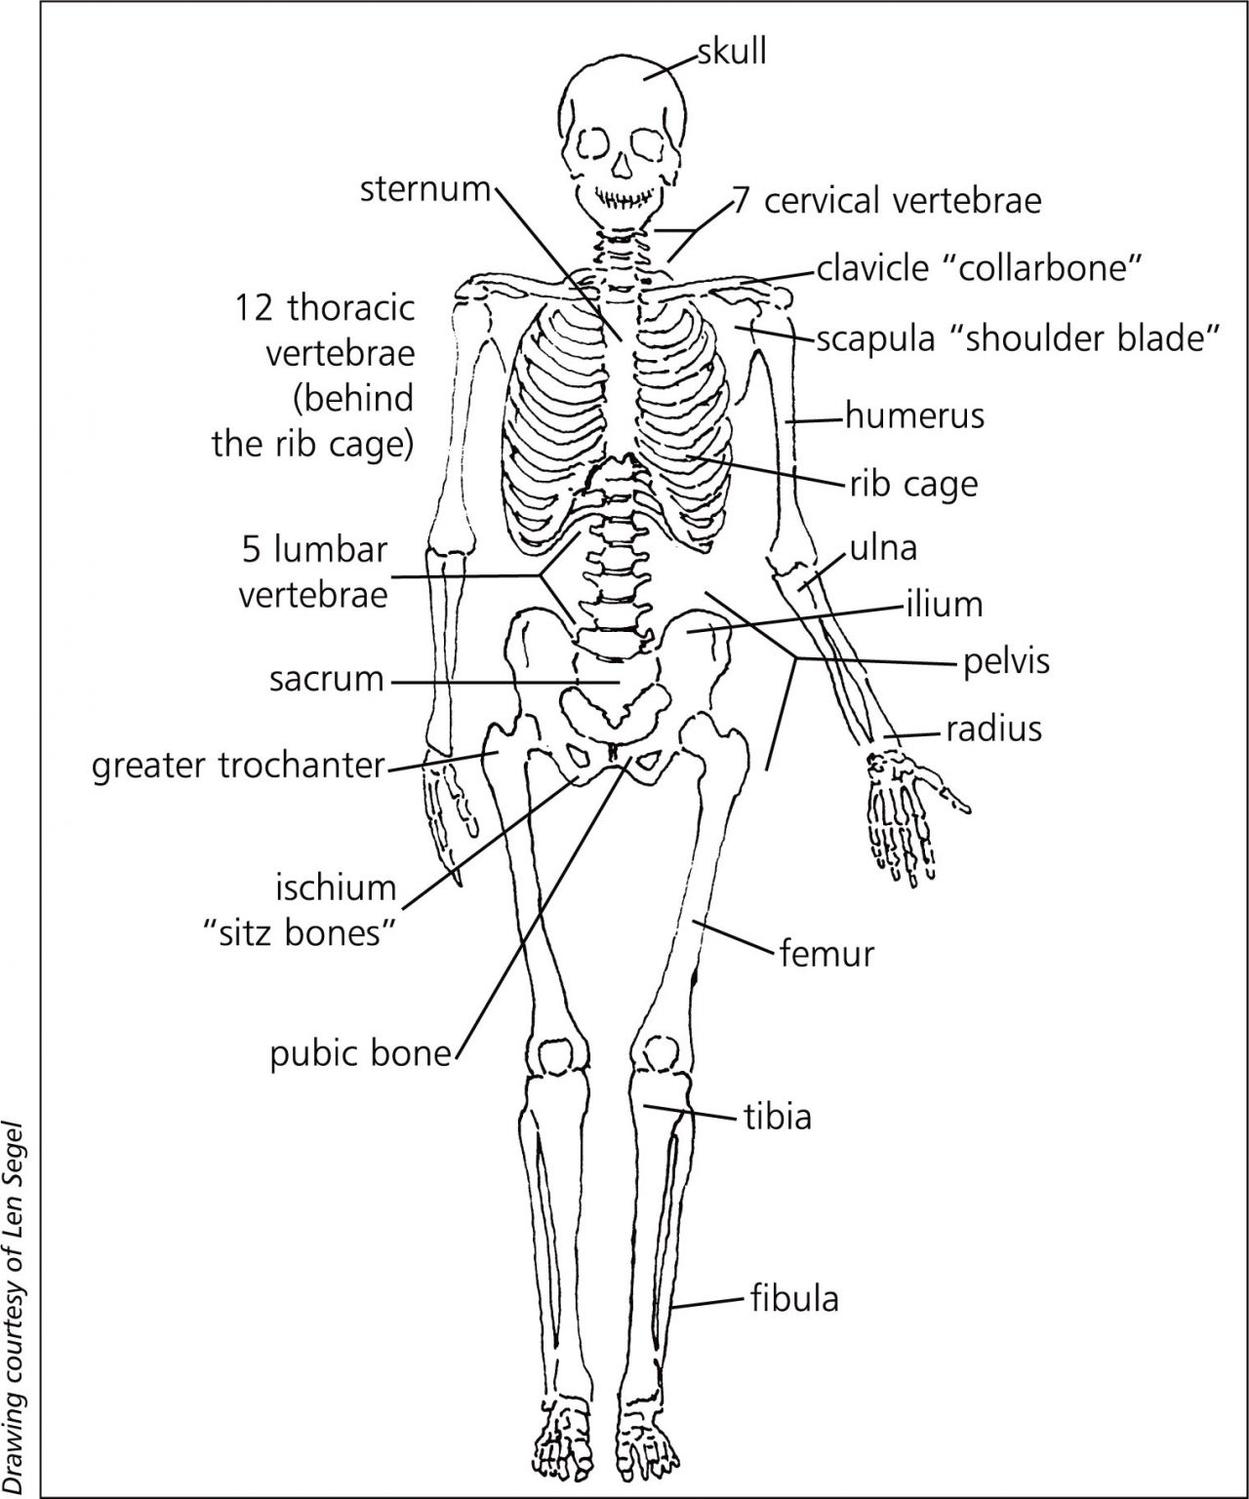 the skeletal system (lesson 0385) - TQA explorer